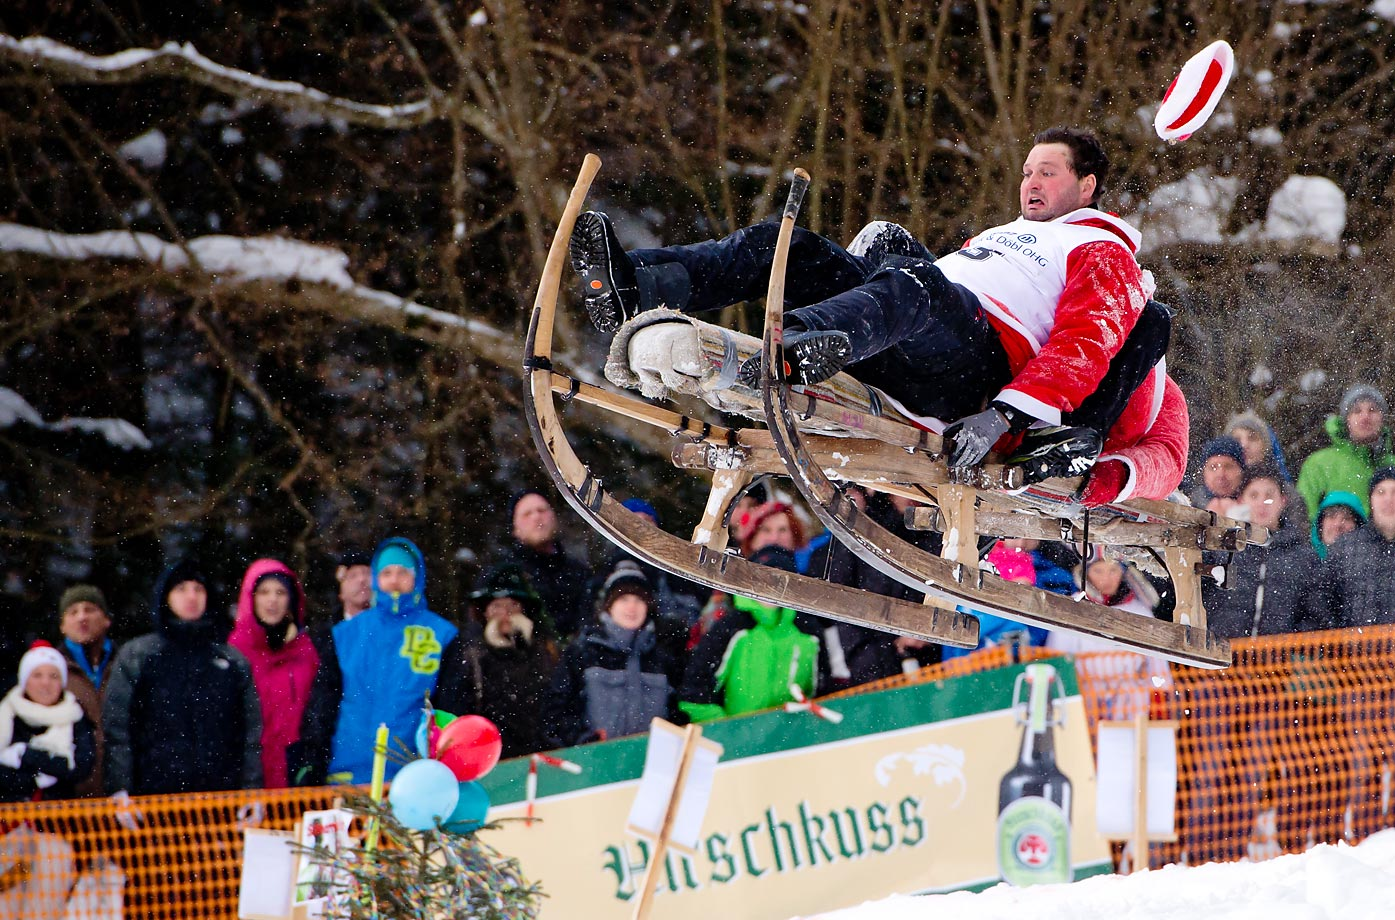 Two costumed participants ride their sled during the traditional Schnablerrennen sled race in Gaissach, Germany. More than  100 costumed sled racers took part in the traditional event.